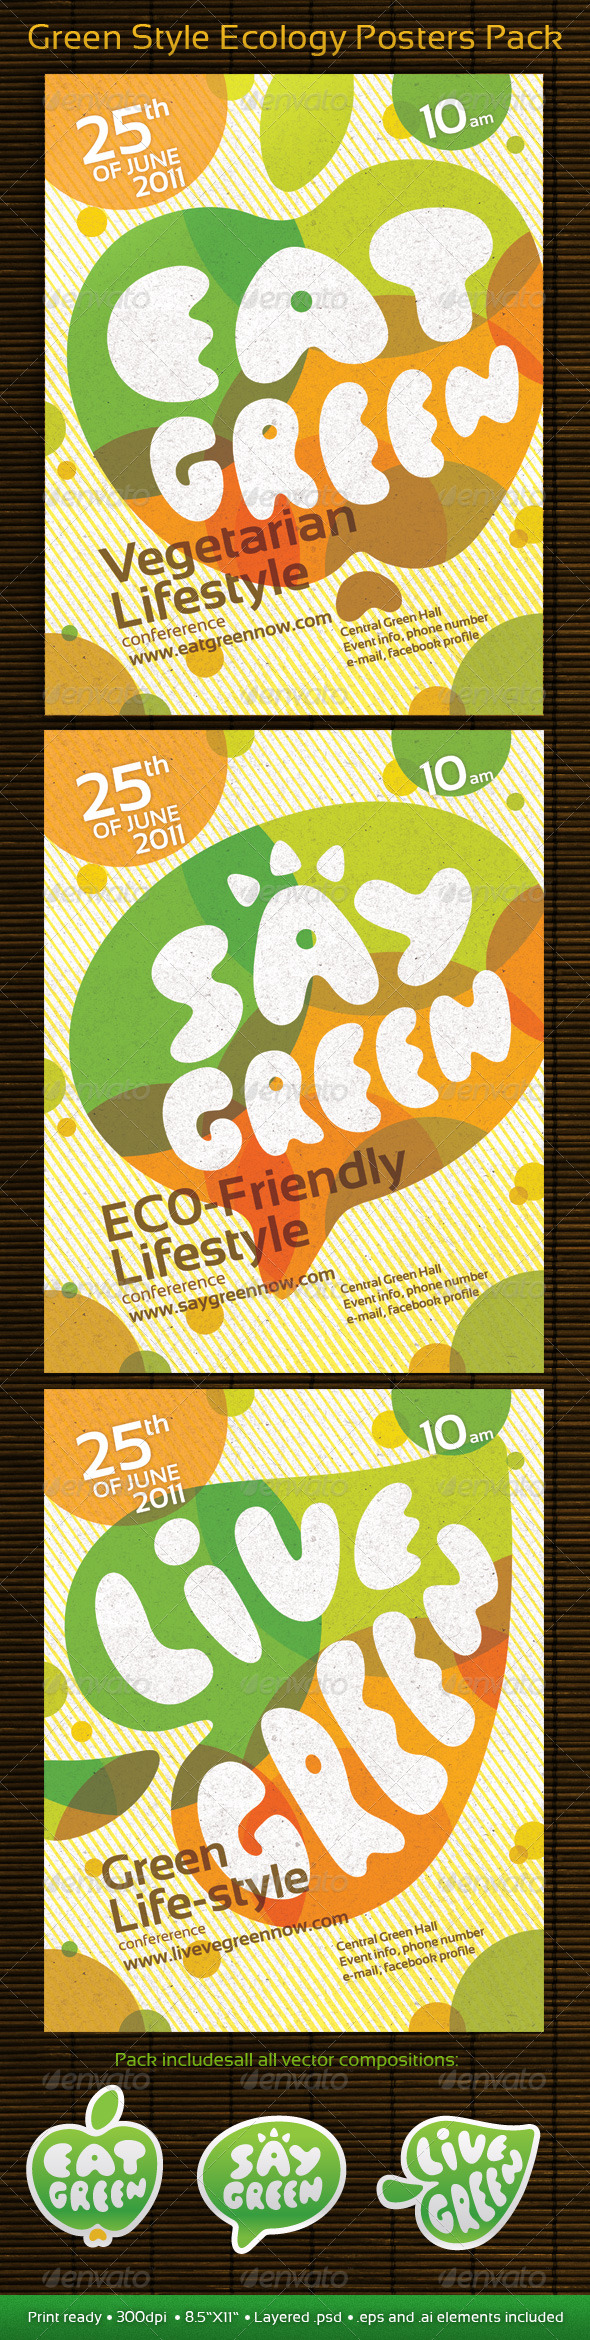 Green Style Ecology Posters Pack - Print Templates